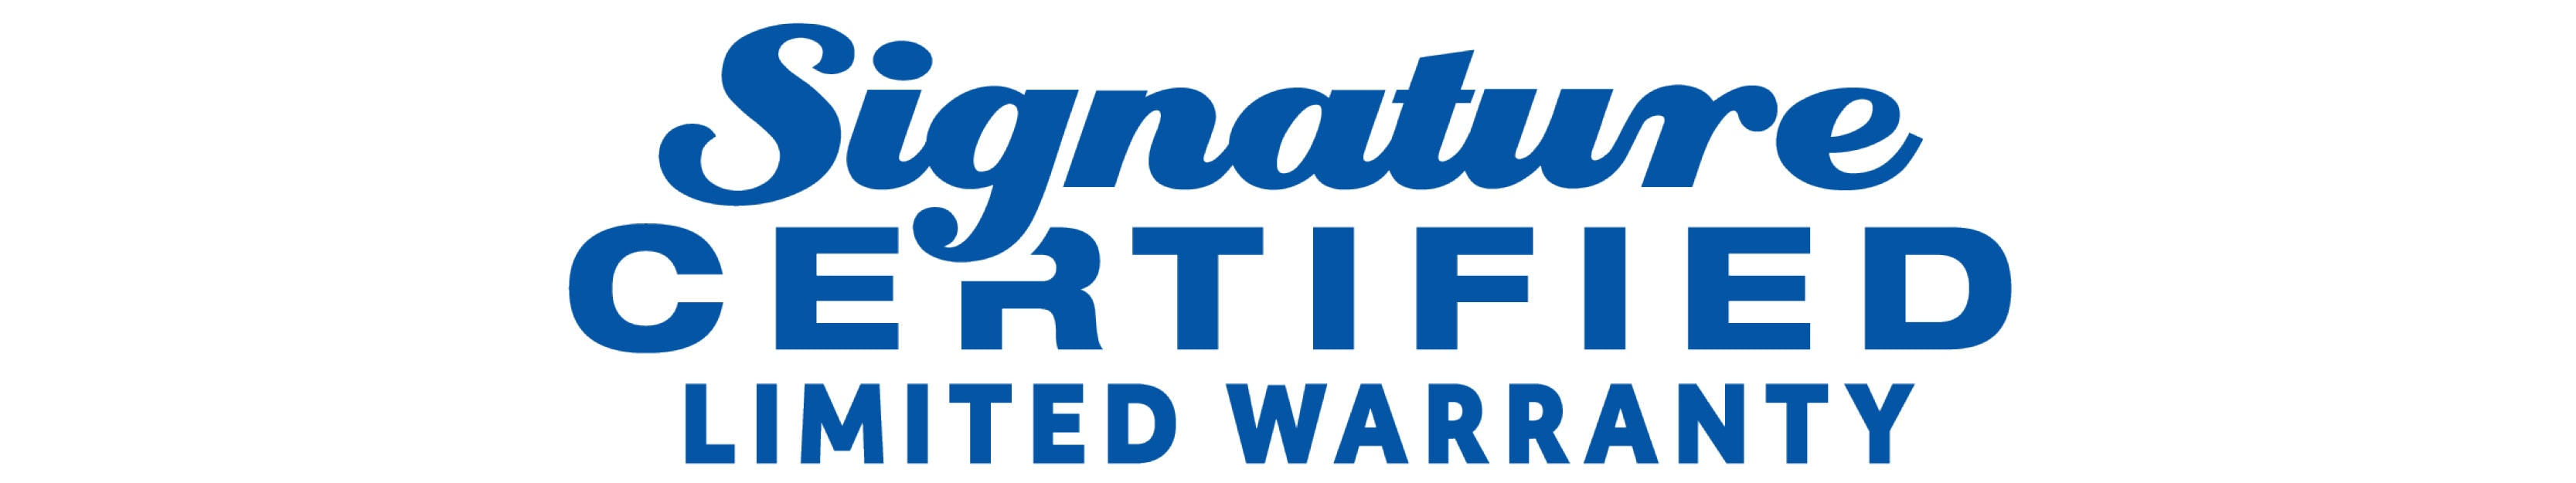 Signature Certified Limited Warranty | Fenton Family Dealerships